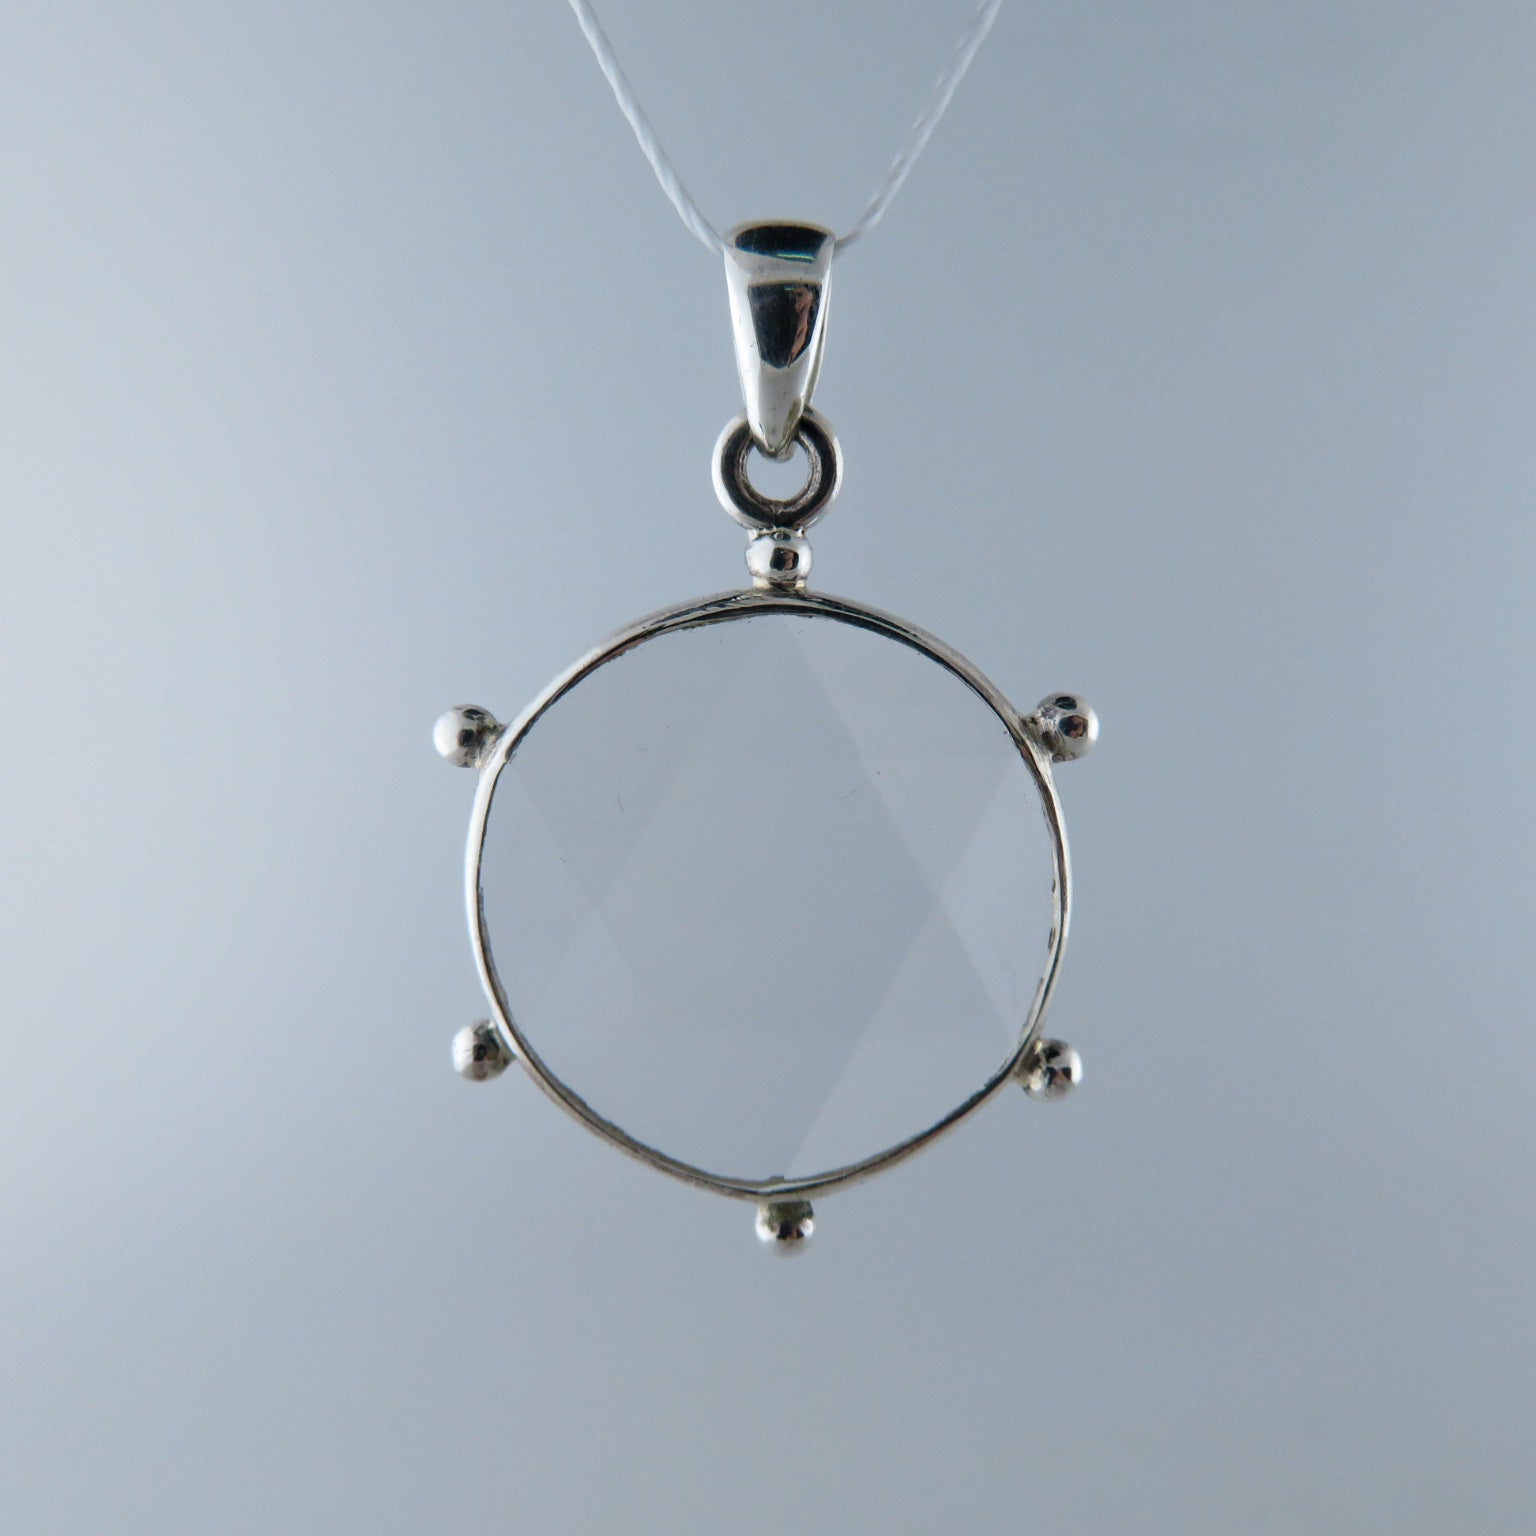 Clear Quartz (David Star) Pendant with Sterling Silver